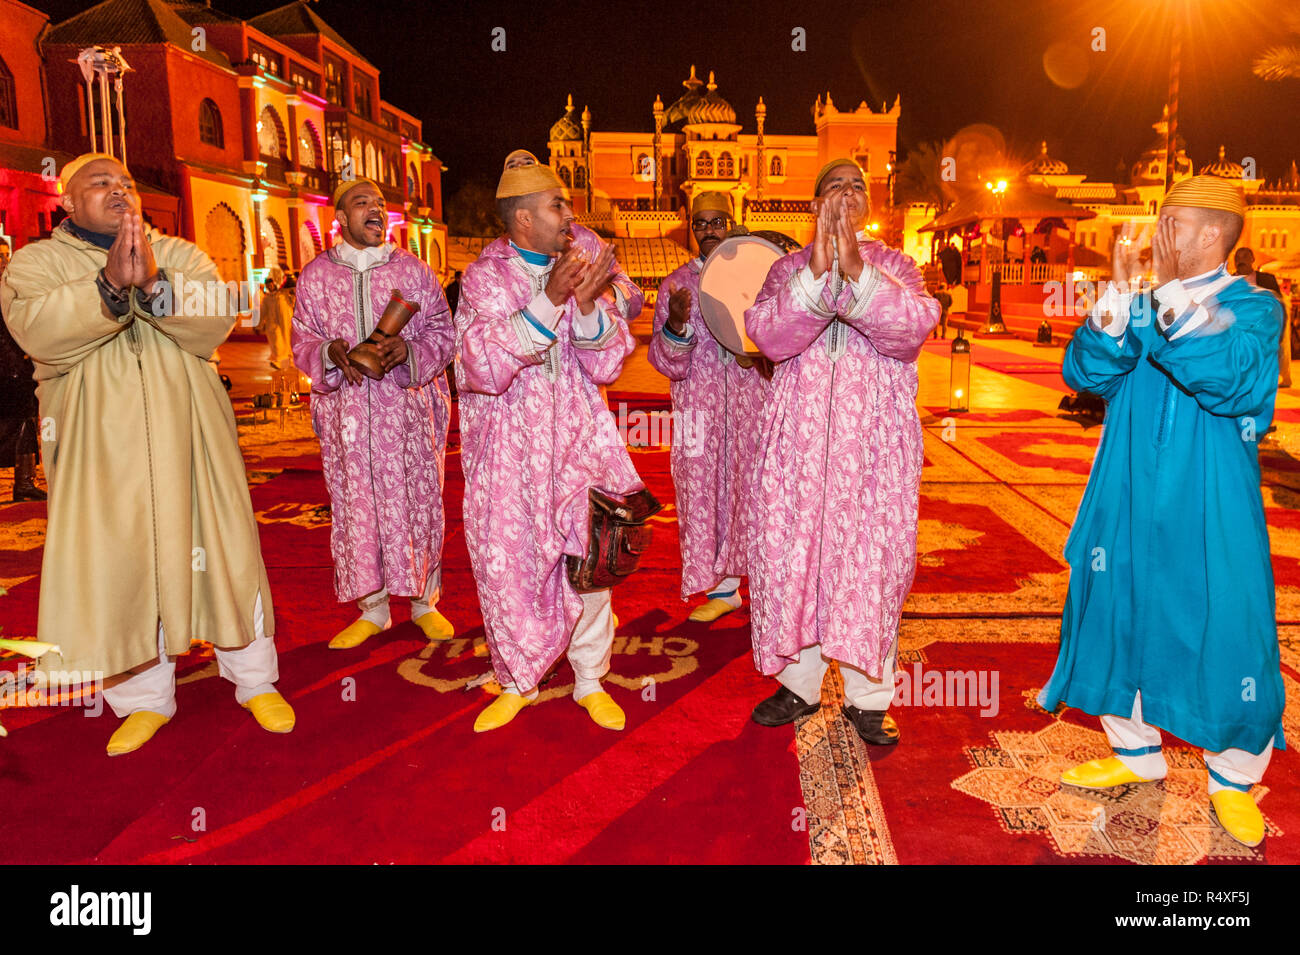 26-02-15, Marrakech, Morocco. Tourist entertainment at the Chez Ali Fantasia show. Guests are entertained by the songs and dances of folk groups, a be - Stock Image